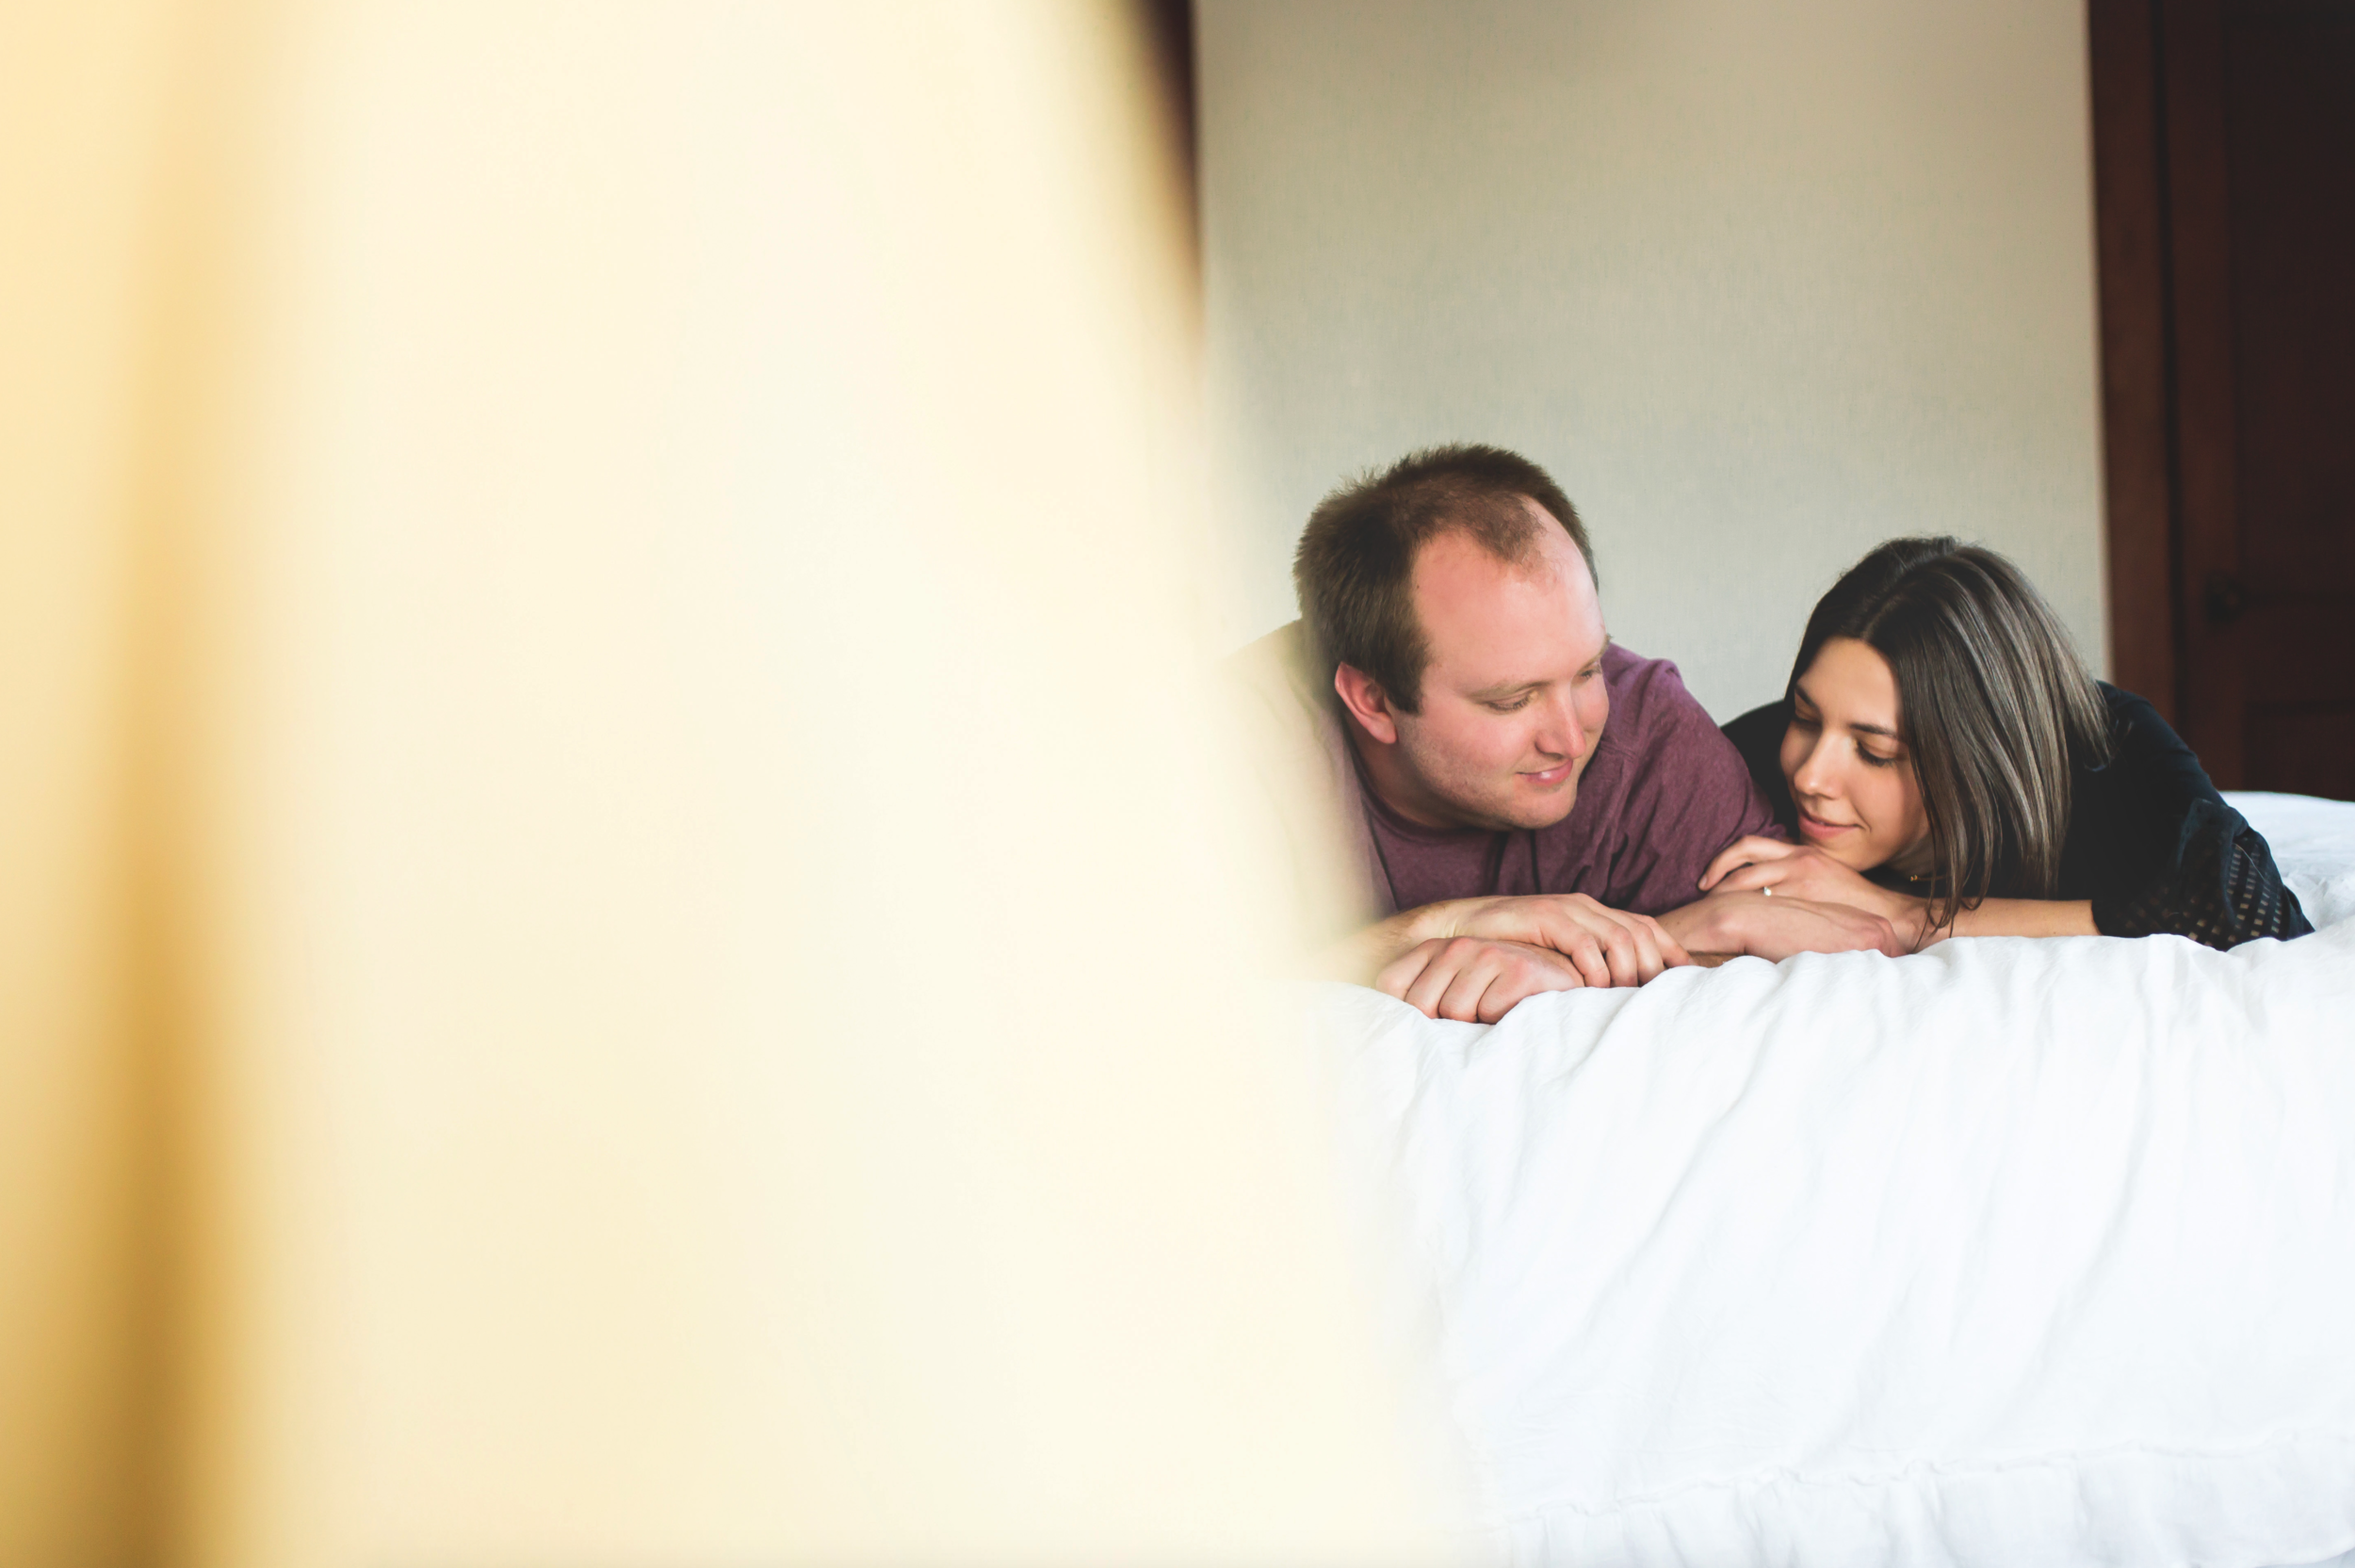 At-Home-Engagement-Session-Photography-Hamilton-Burlington-Niagara-Toronto-Wedding-Photography-Cozy-Engaged-Moments-by-Lauren-Photo-Image-13.png